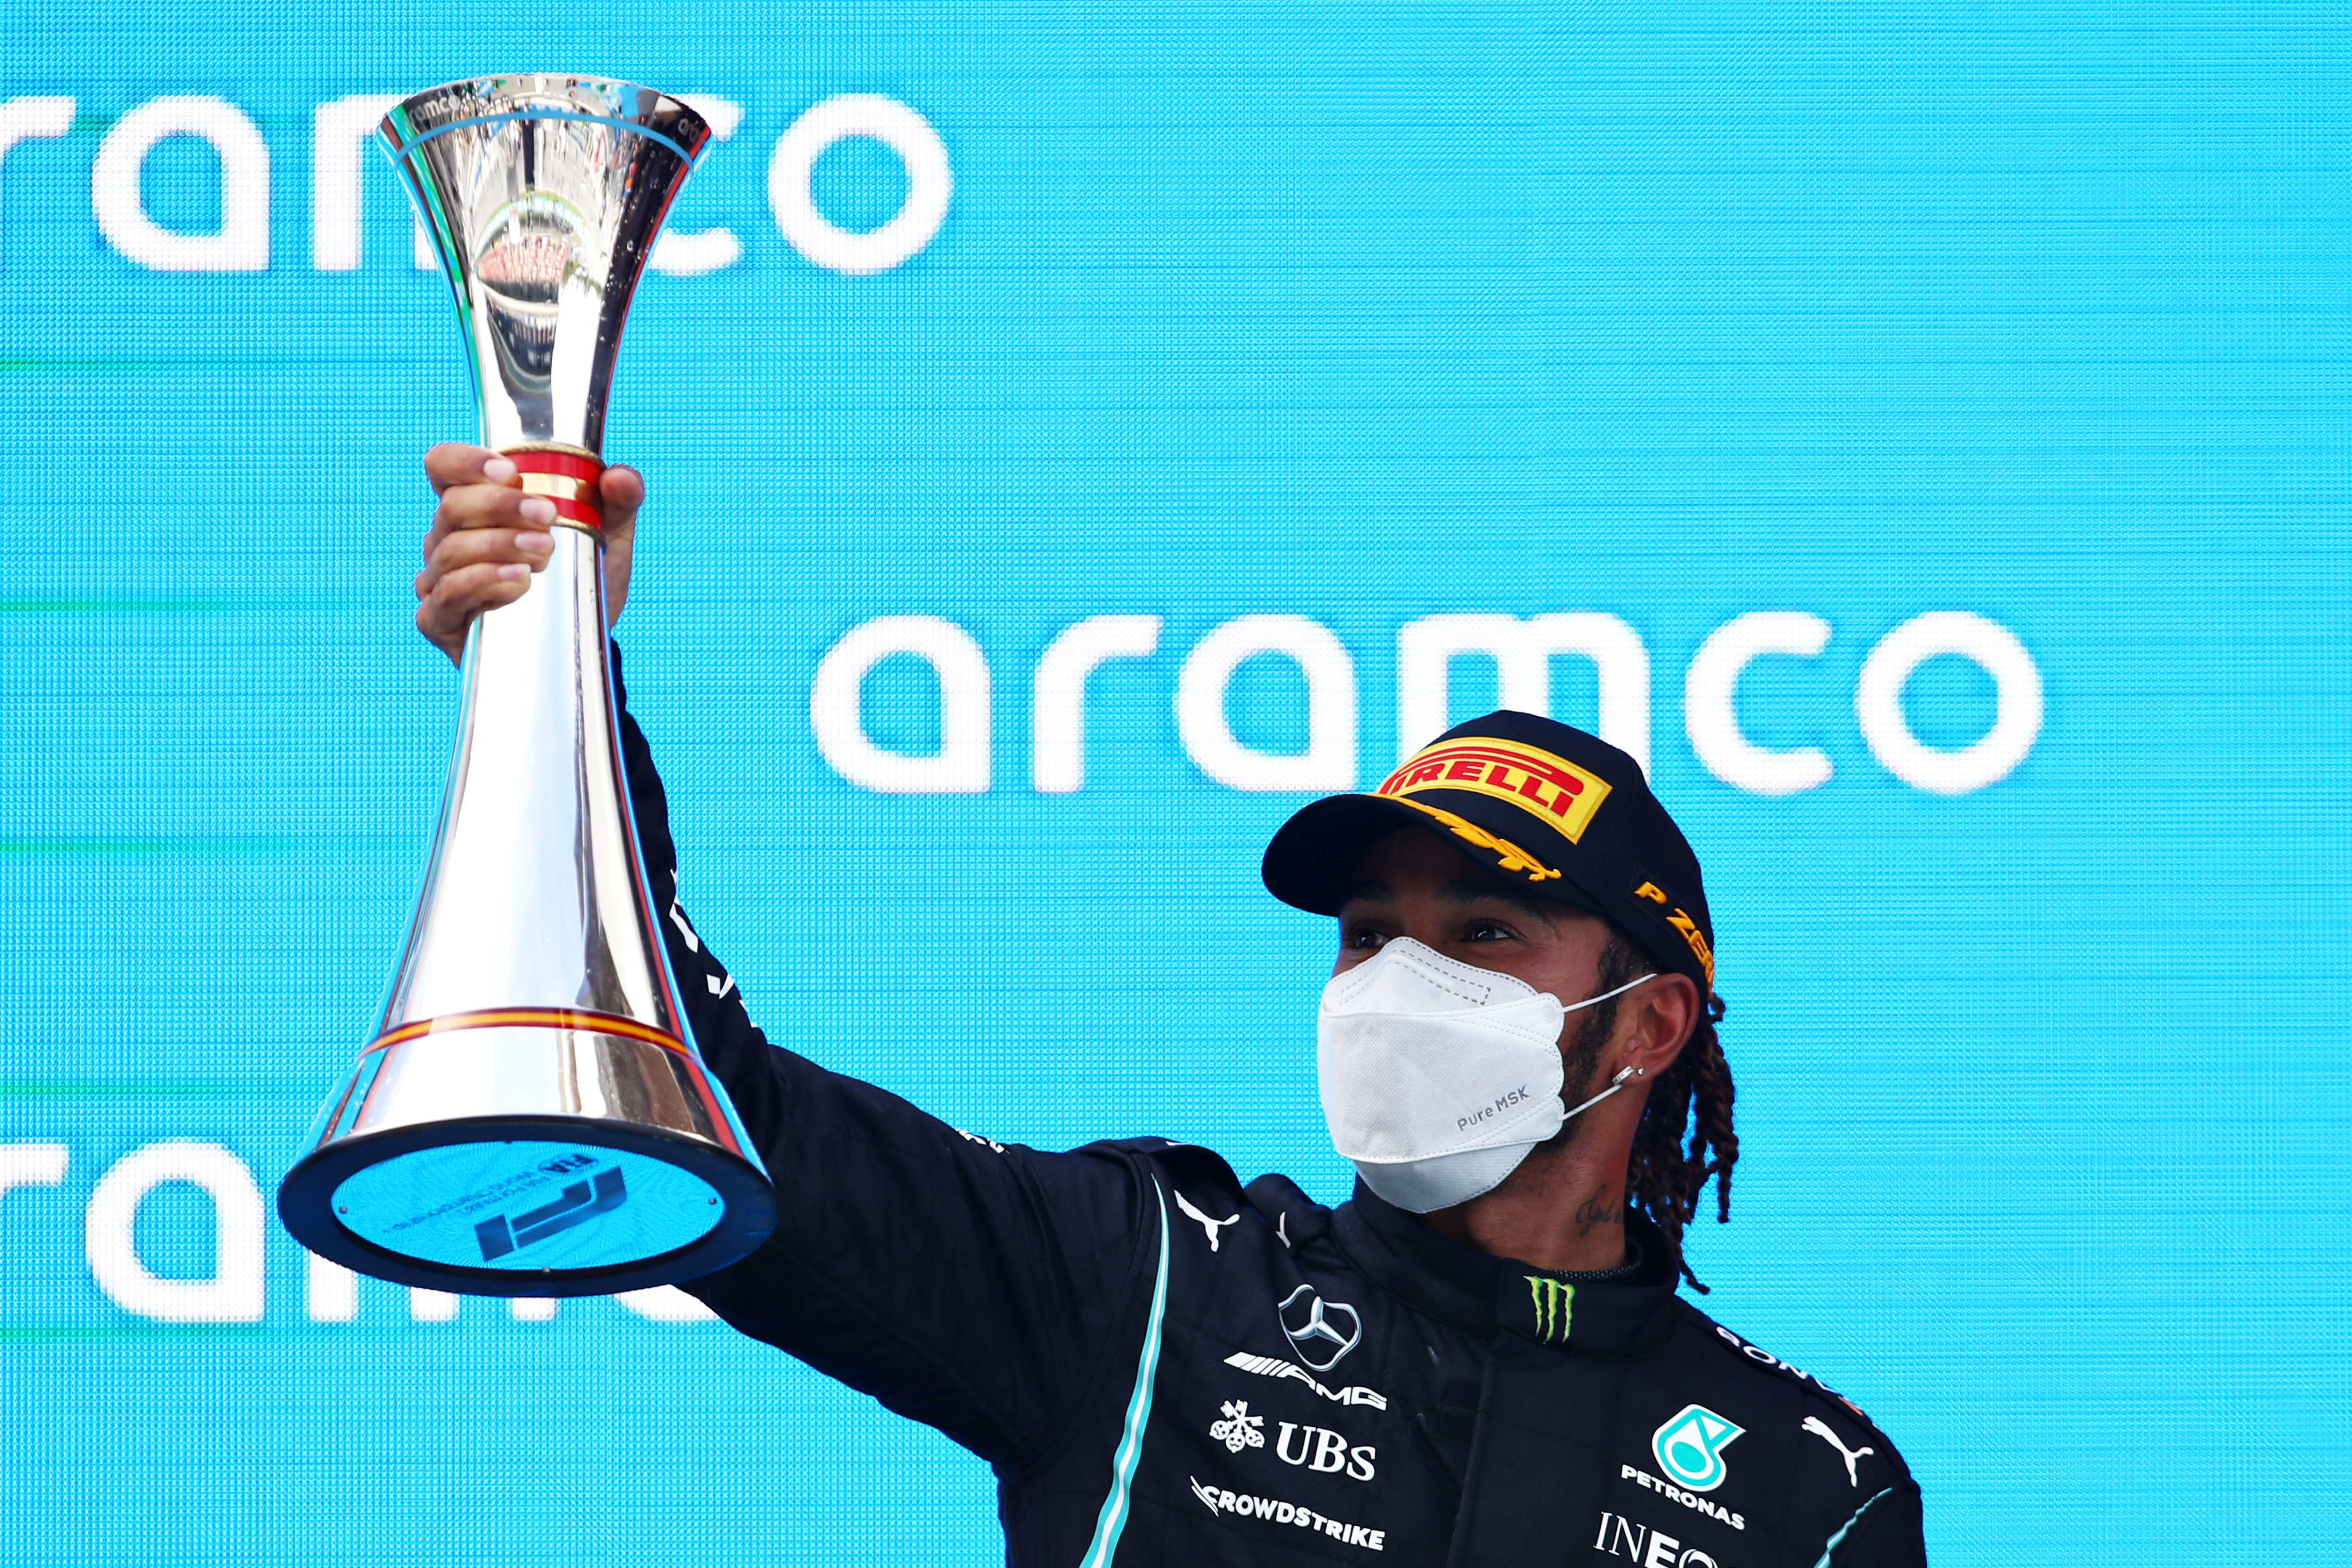 Lewis Hamilton recovers to overtake Max Verstappen and win fifth straight Spanish Grand Prix